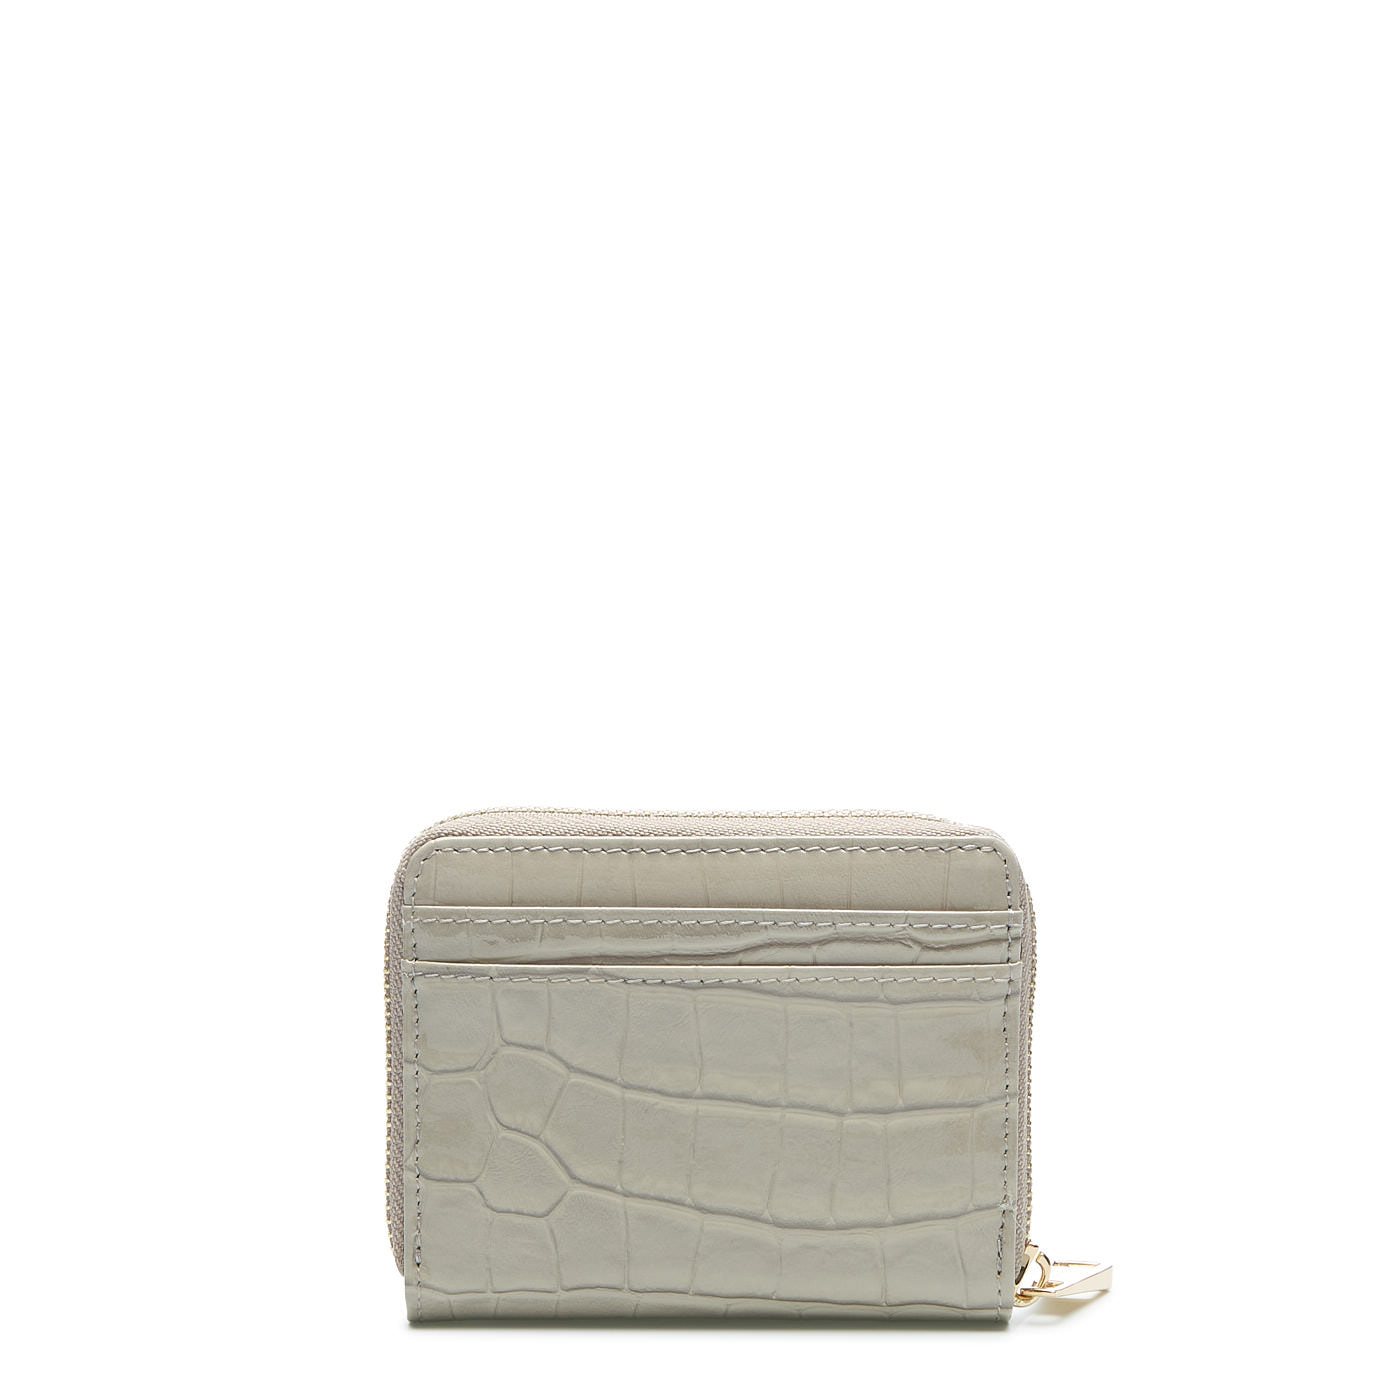 May Sparkle Festive sand grey croco zipper wallet